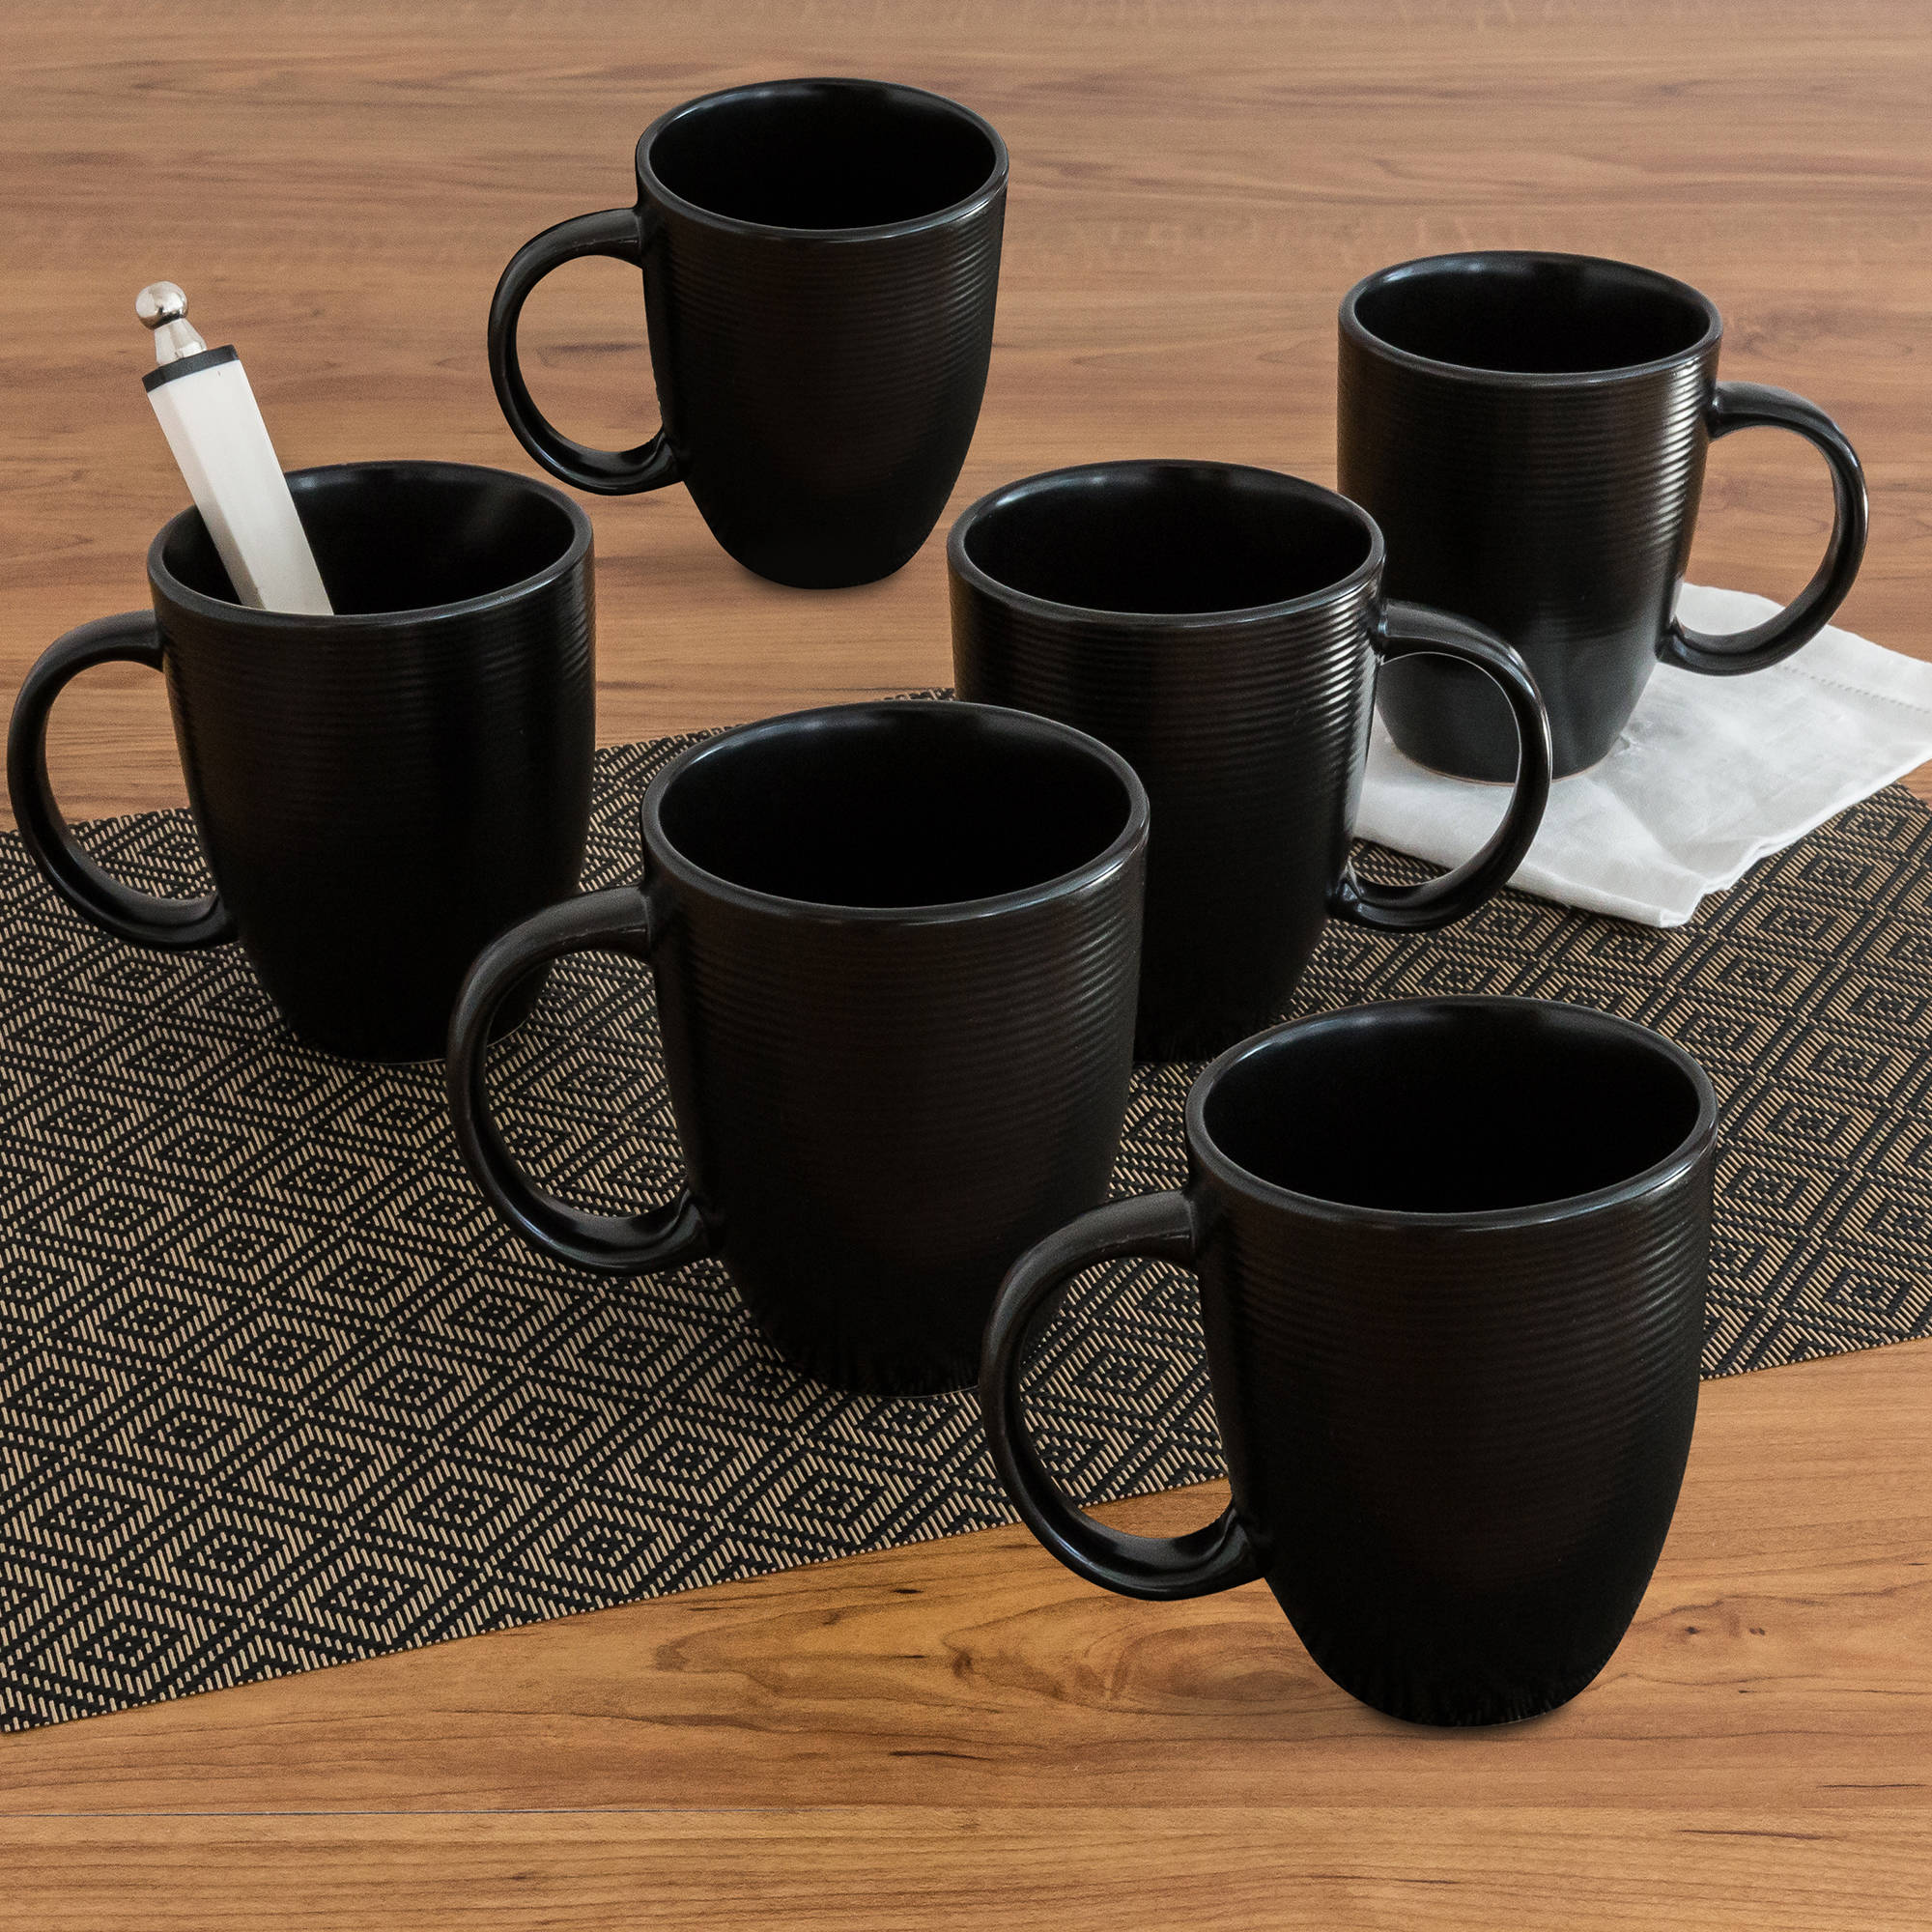 Better Homes and Gardens Matte Swirl Mugs, Black, Set of 6 by